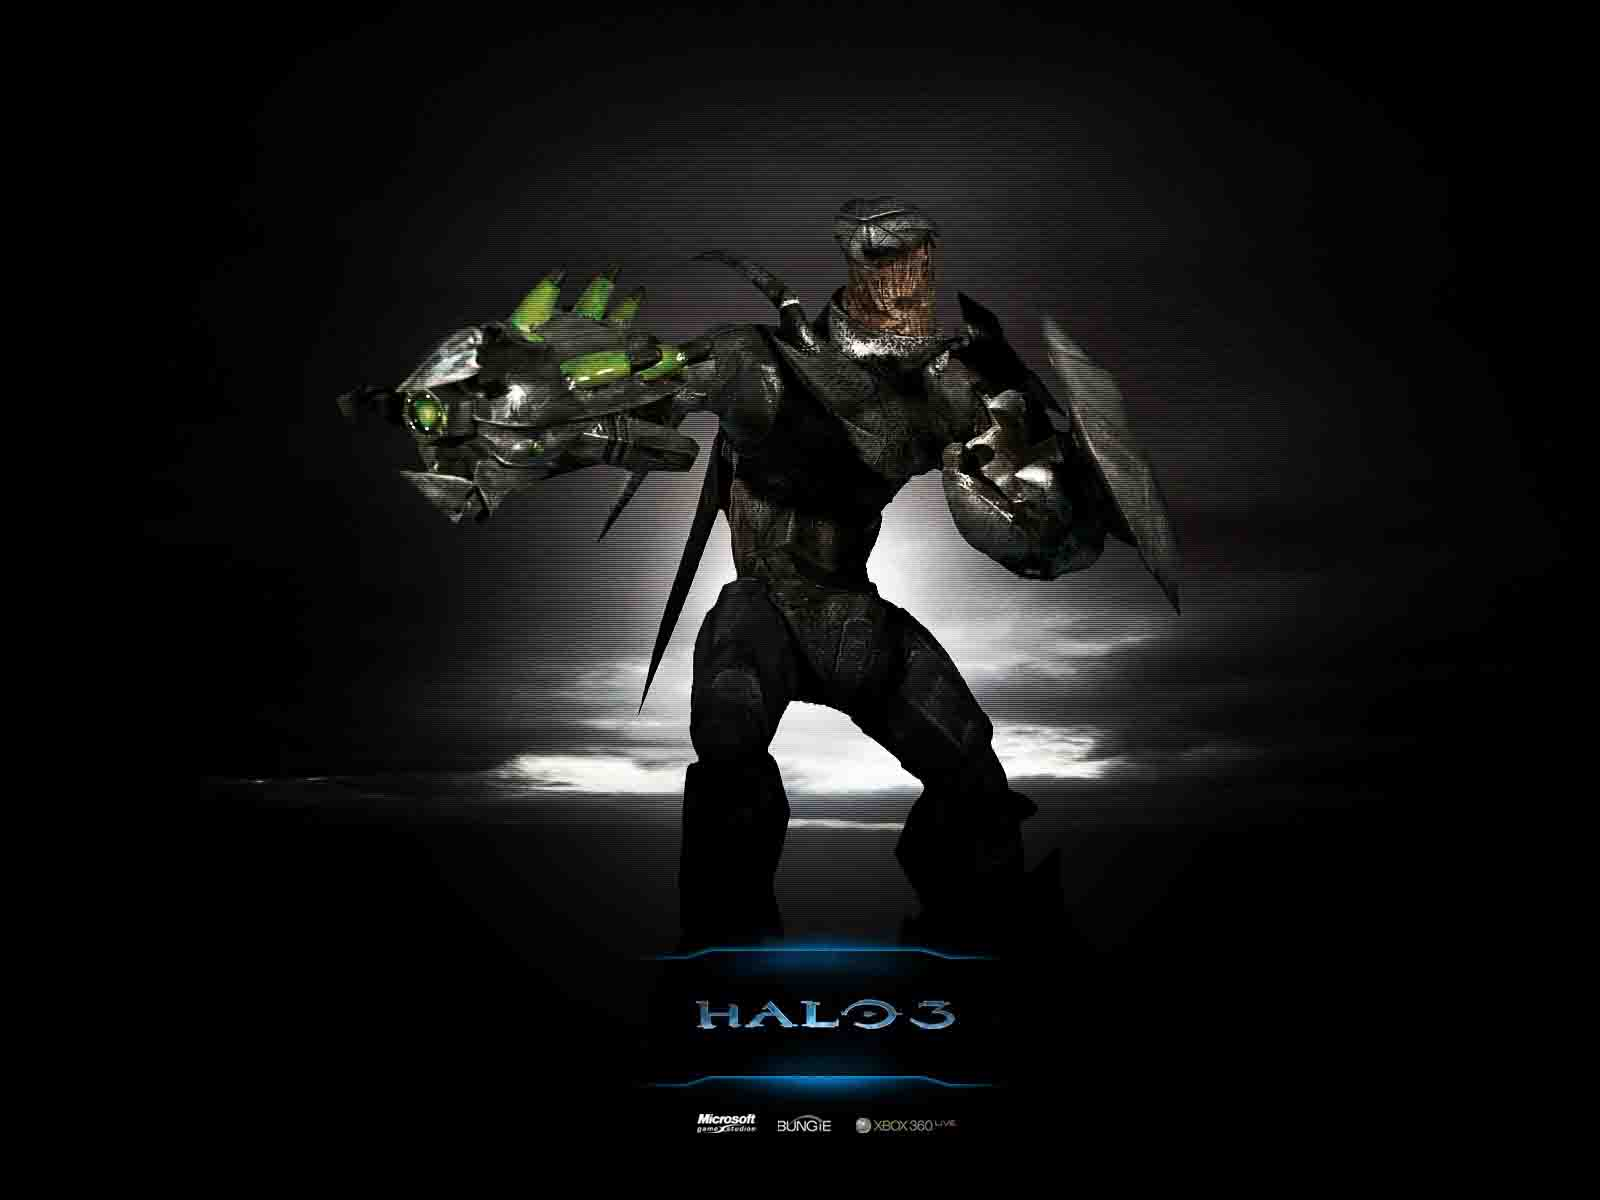 Halo 3 Pictures